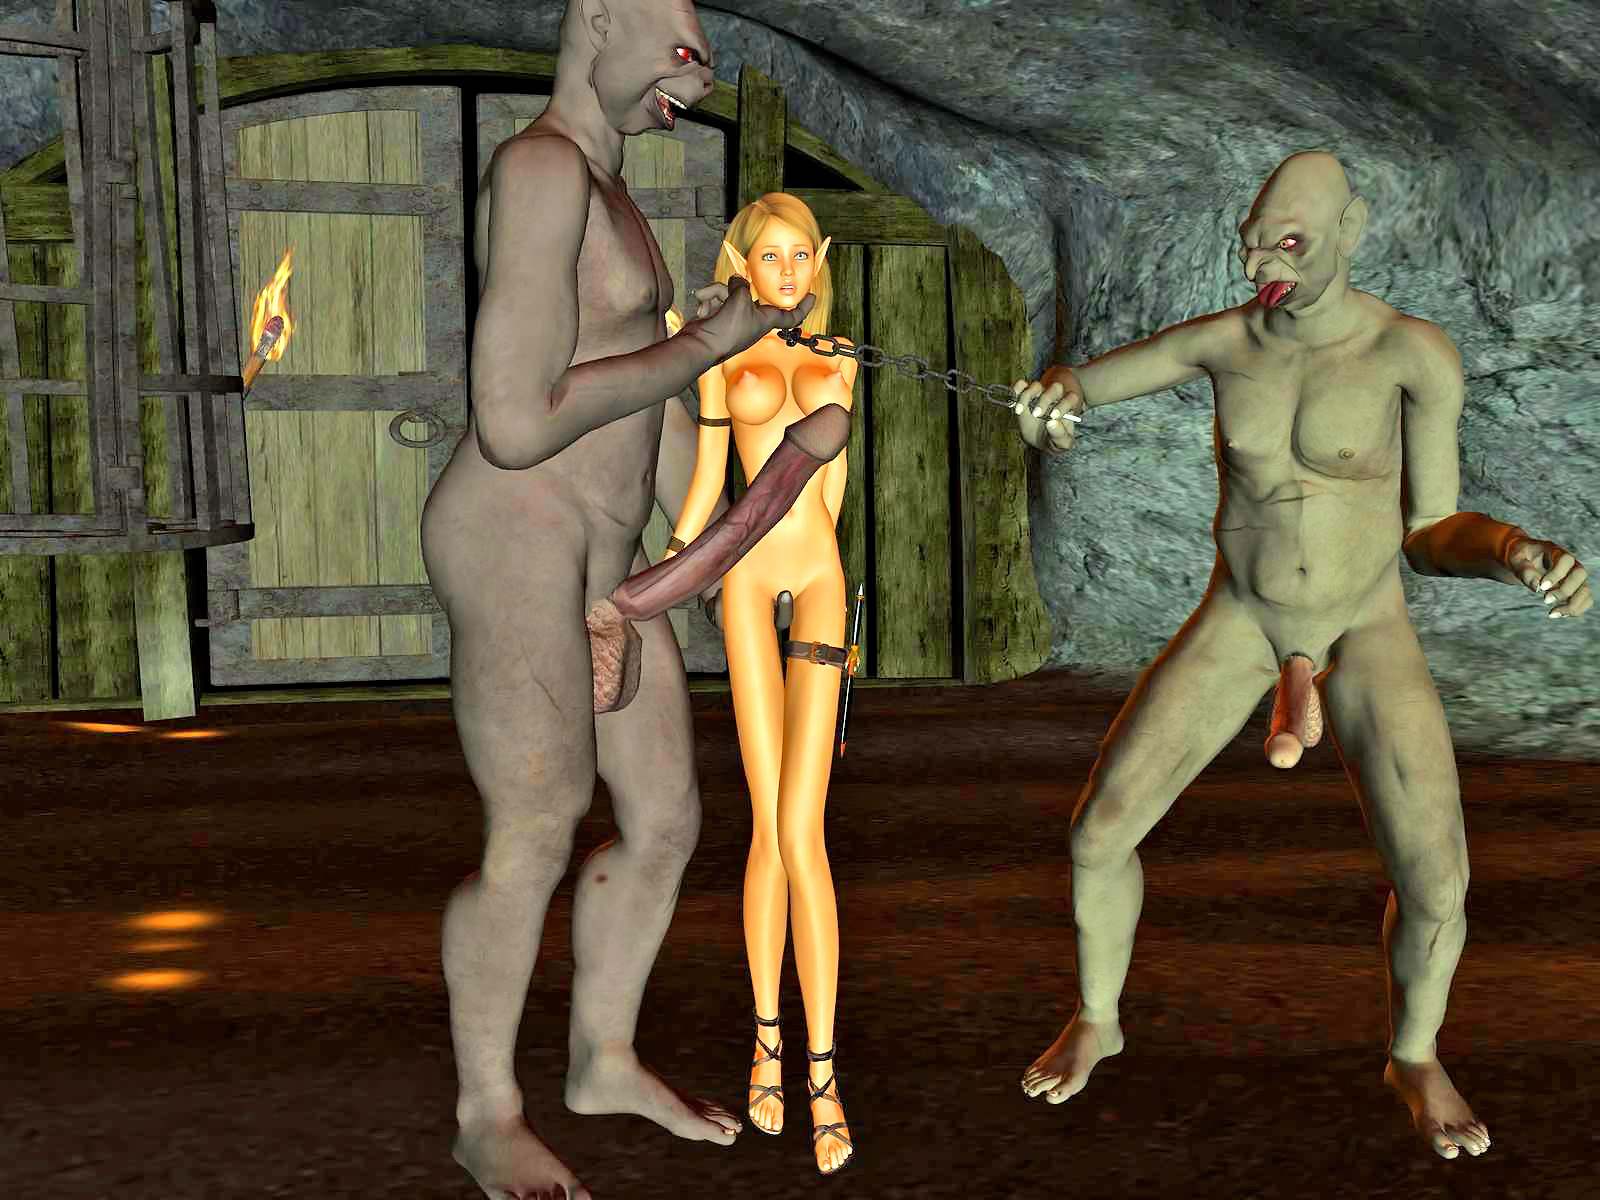 Elves and monster 3d sexclips nsfw photo